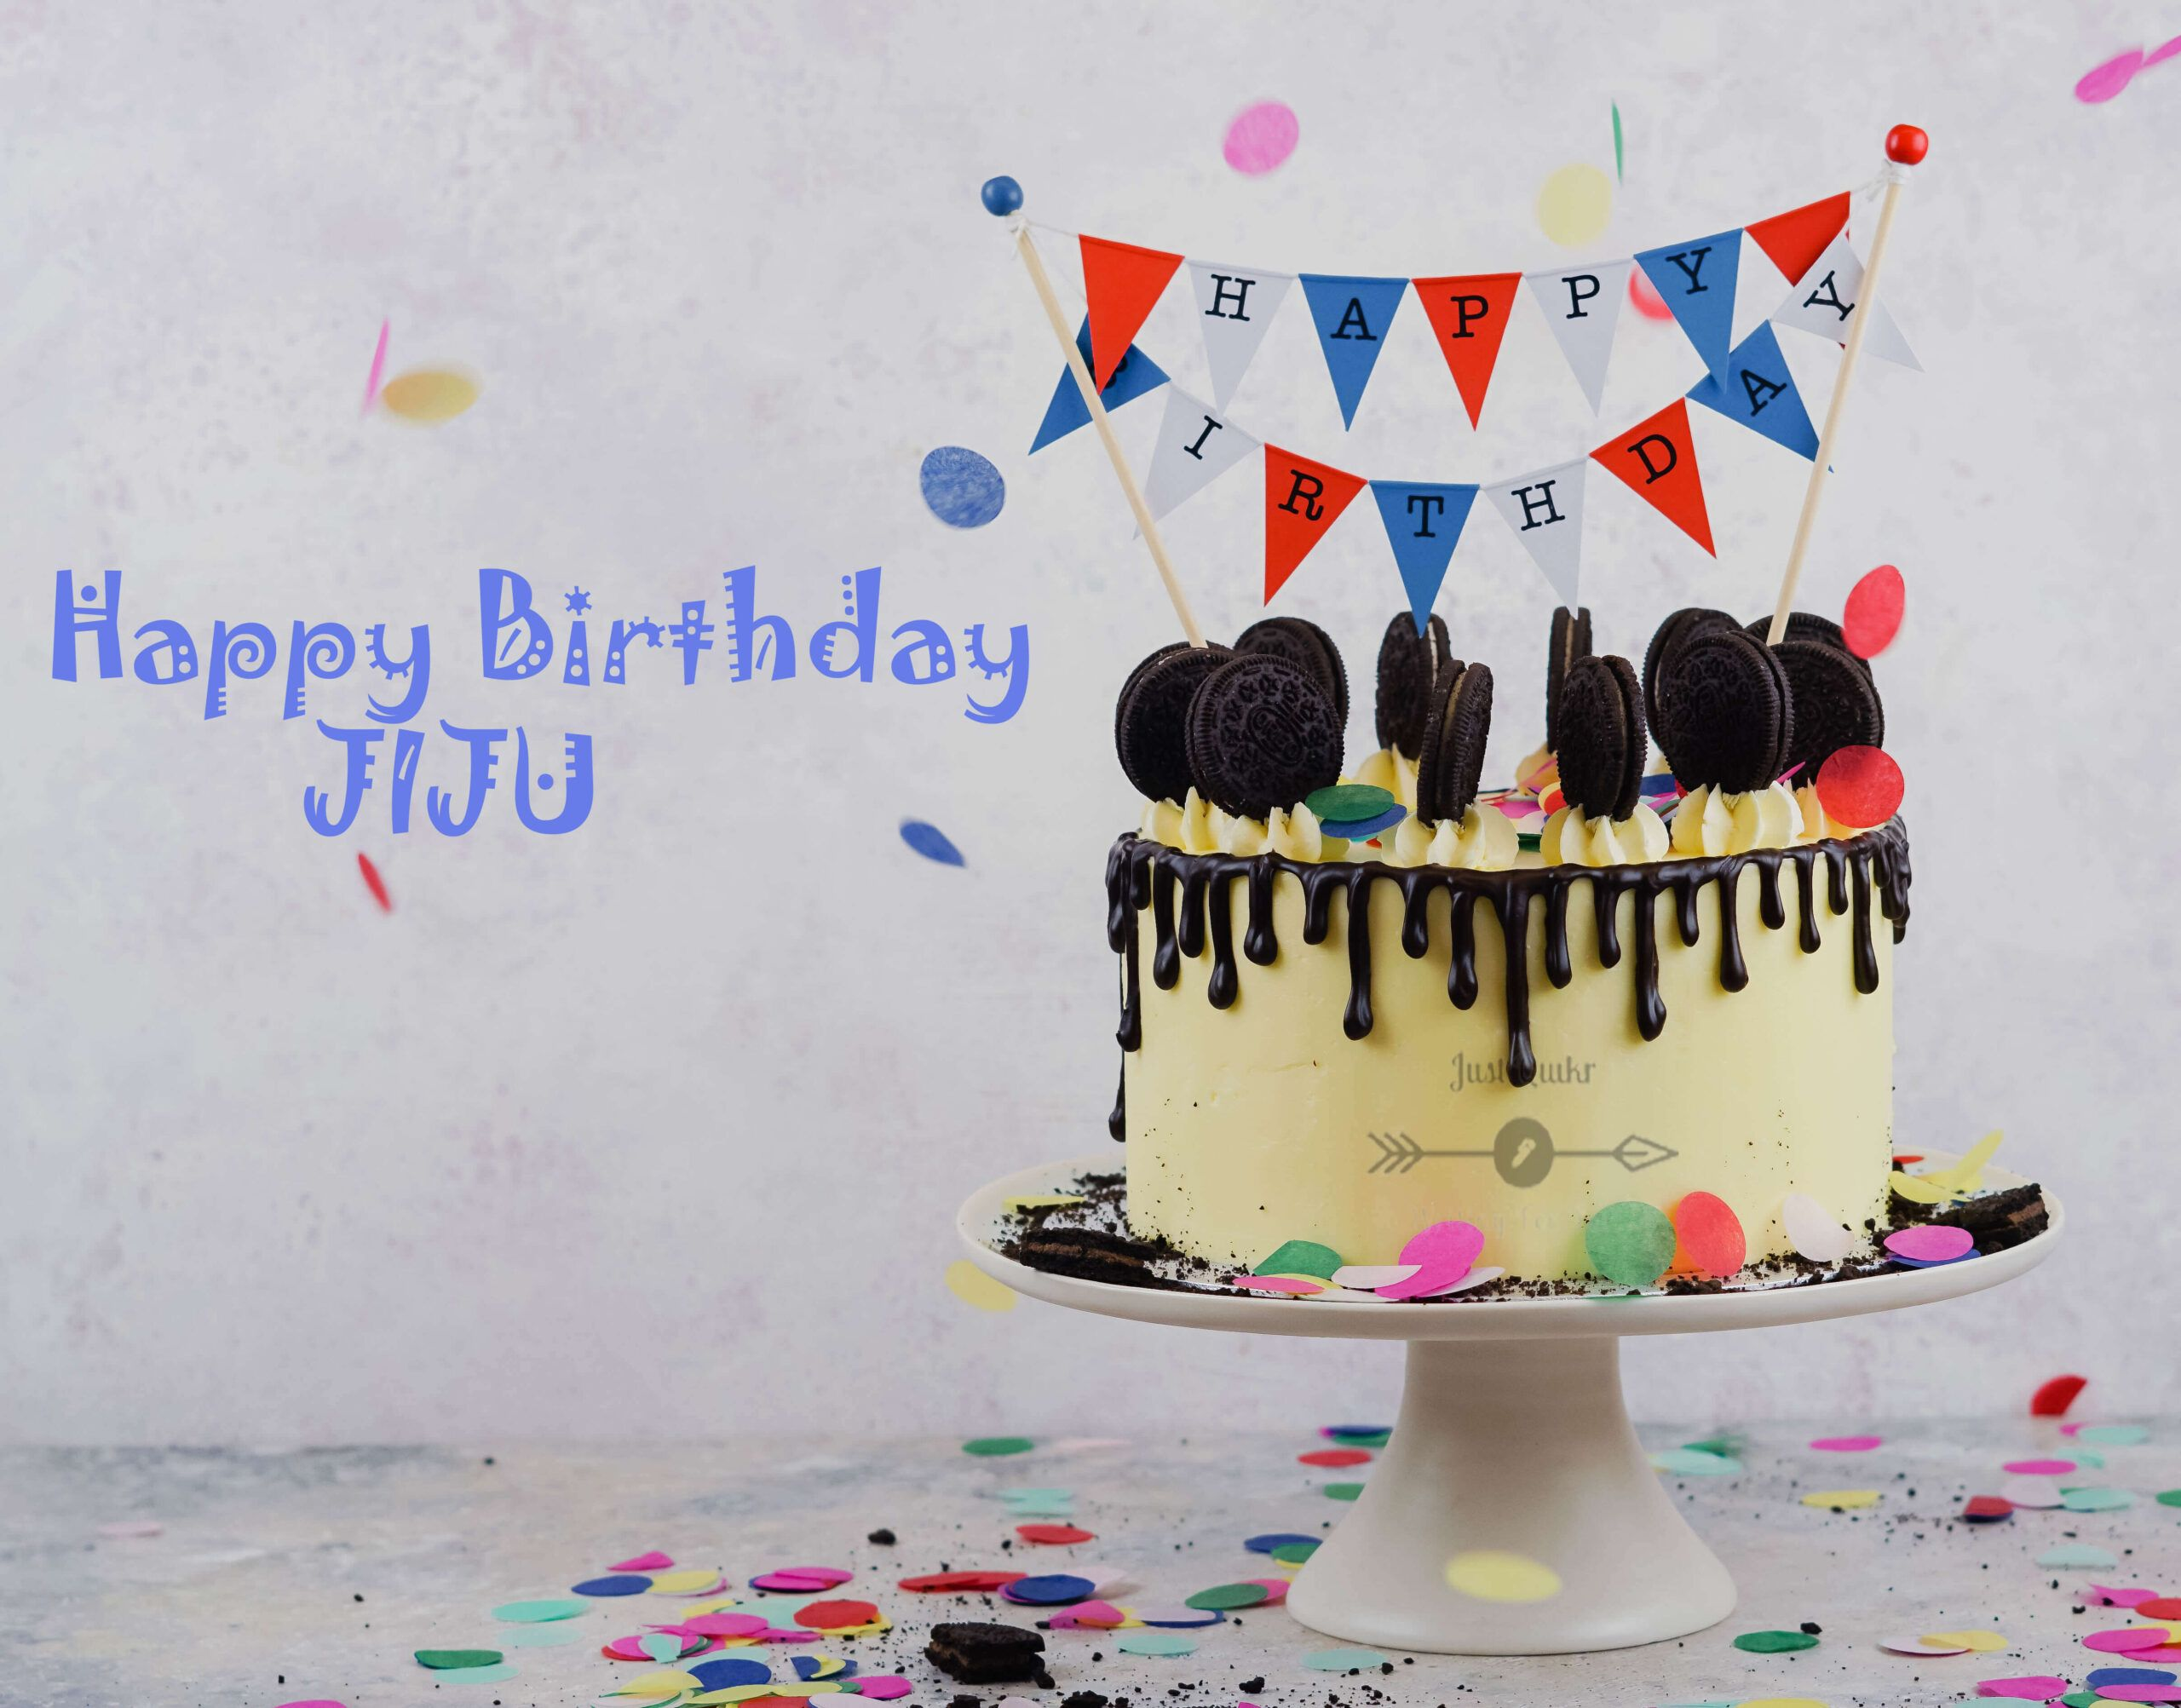 Pin By Justquikr On Happy Birthday Cake Hd Pics Images Wishes Happy Birthday Cake Hd Happy Birthday Cakes Happy Birthday Cake Pictures